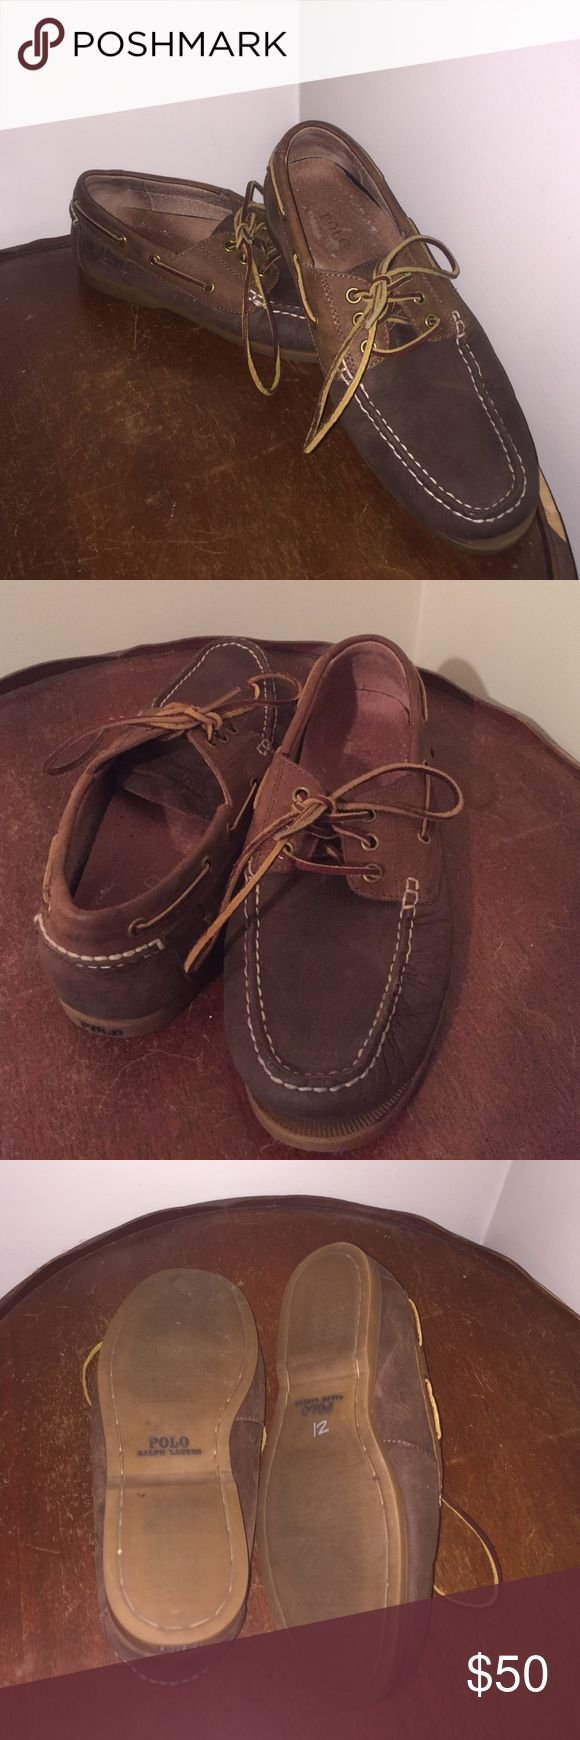 Polo Ralph Lauren boat shoes all leather Polo Ralph Lauren boat shoes all leather. Size 9 D. Like new Polo by Ralph Lauren Shoes Boat Shoes